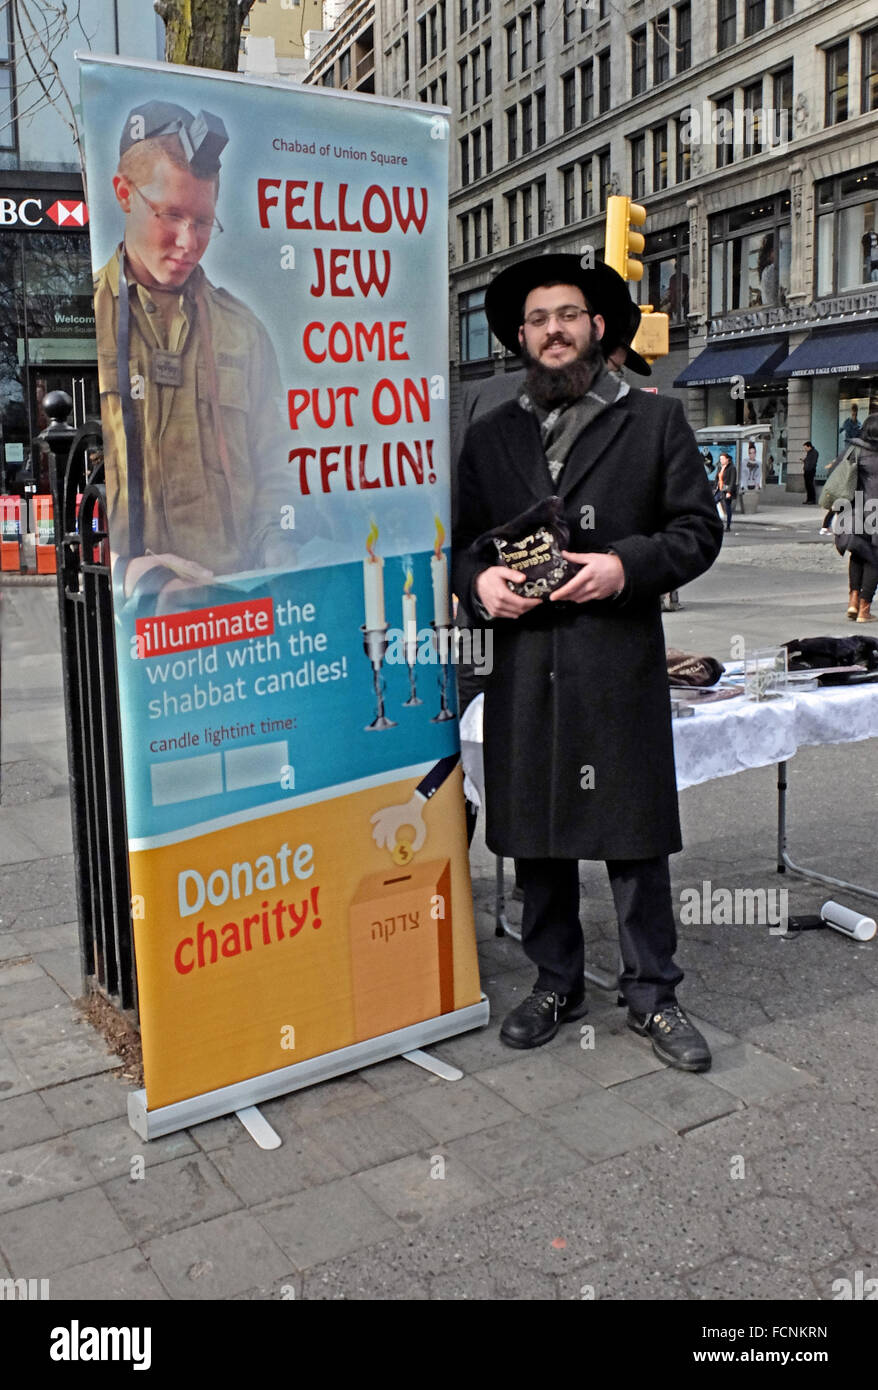 A religious Jewish man encourages other Jews to wear phylacteries - tefillin - in UNion Square Park in New York - Stock Image